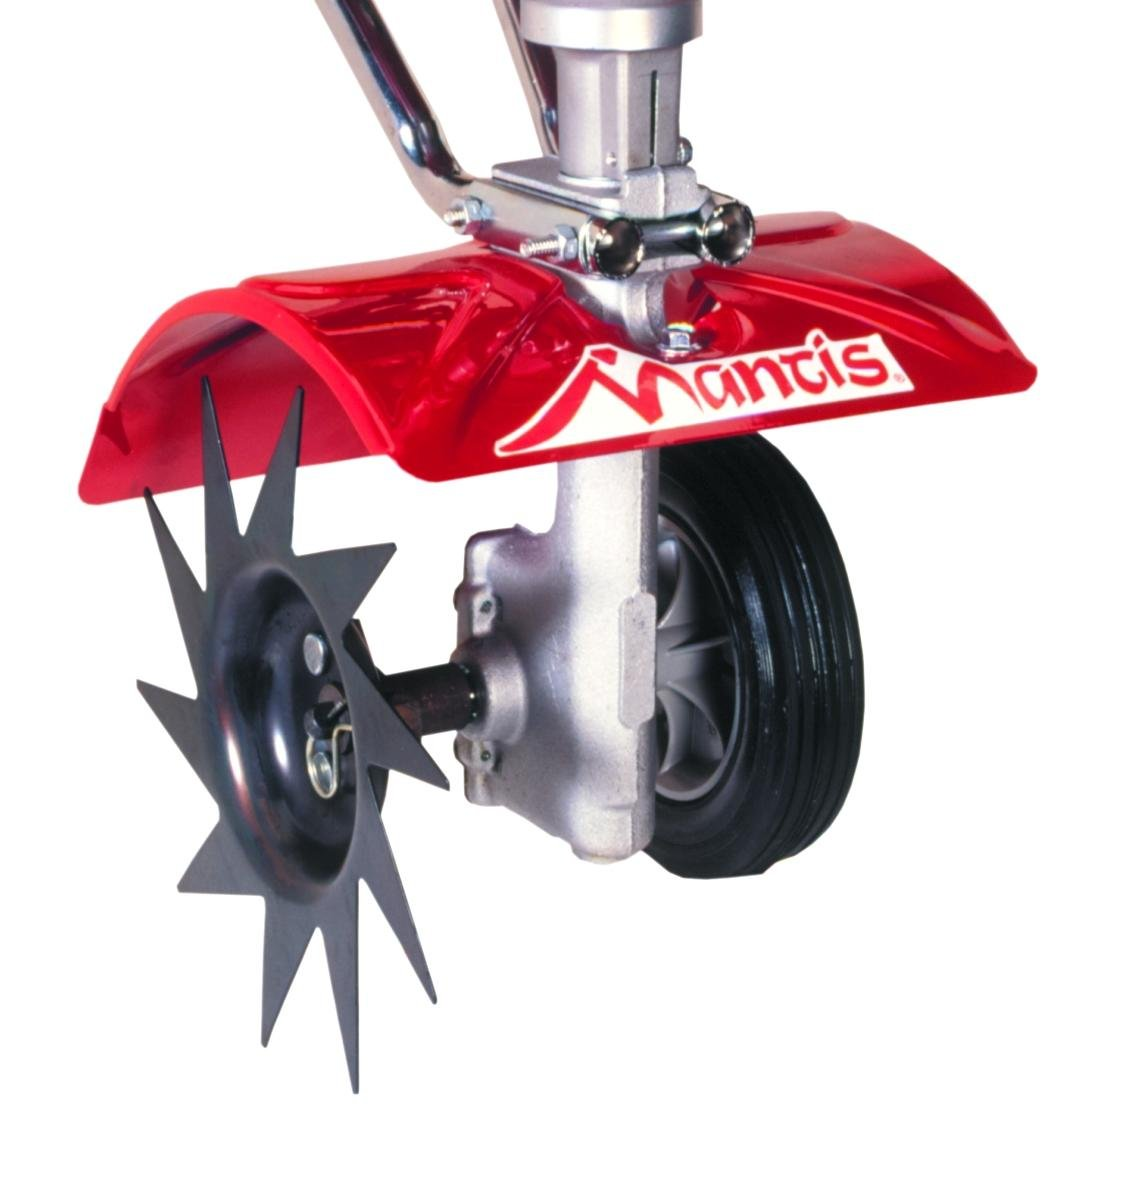 Mantis 3222 Power Tiller Border Edger Attachment for Gardening